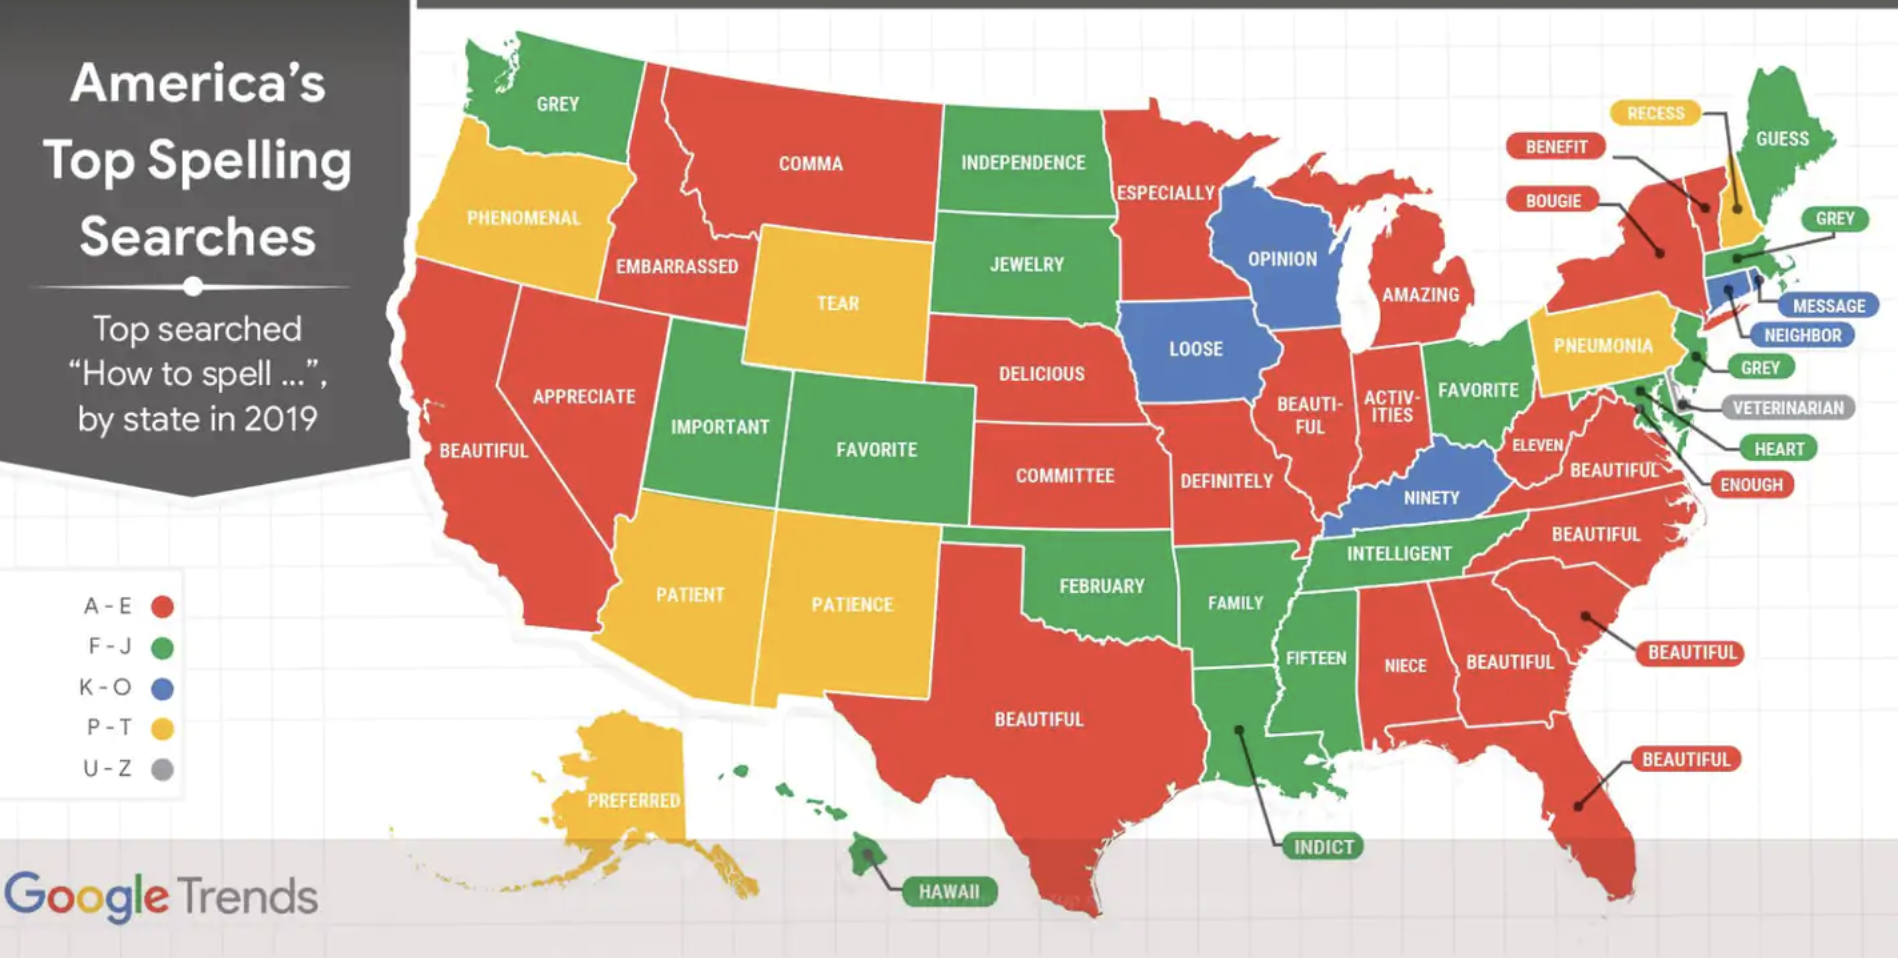 """""""Beautiful"""", """"embarrassed"""", """"patience""""… America's top spelling searches by state, according to Google"""